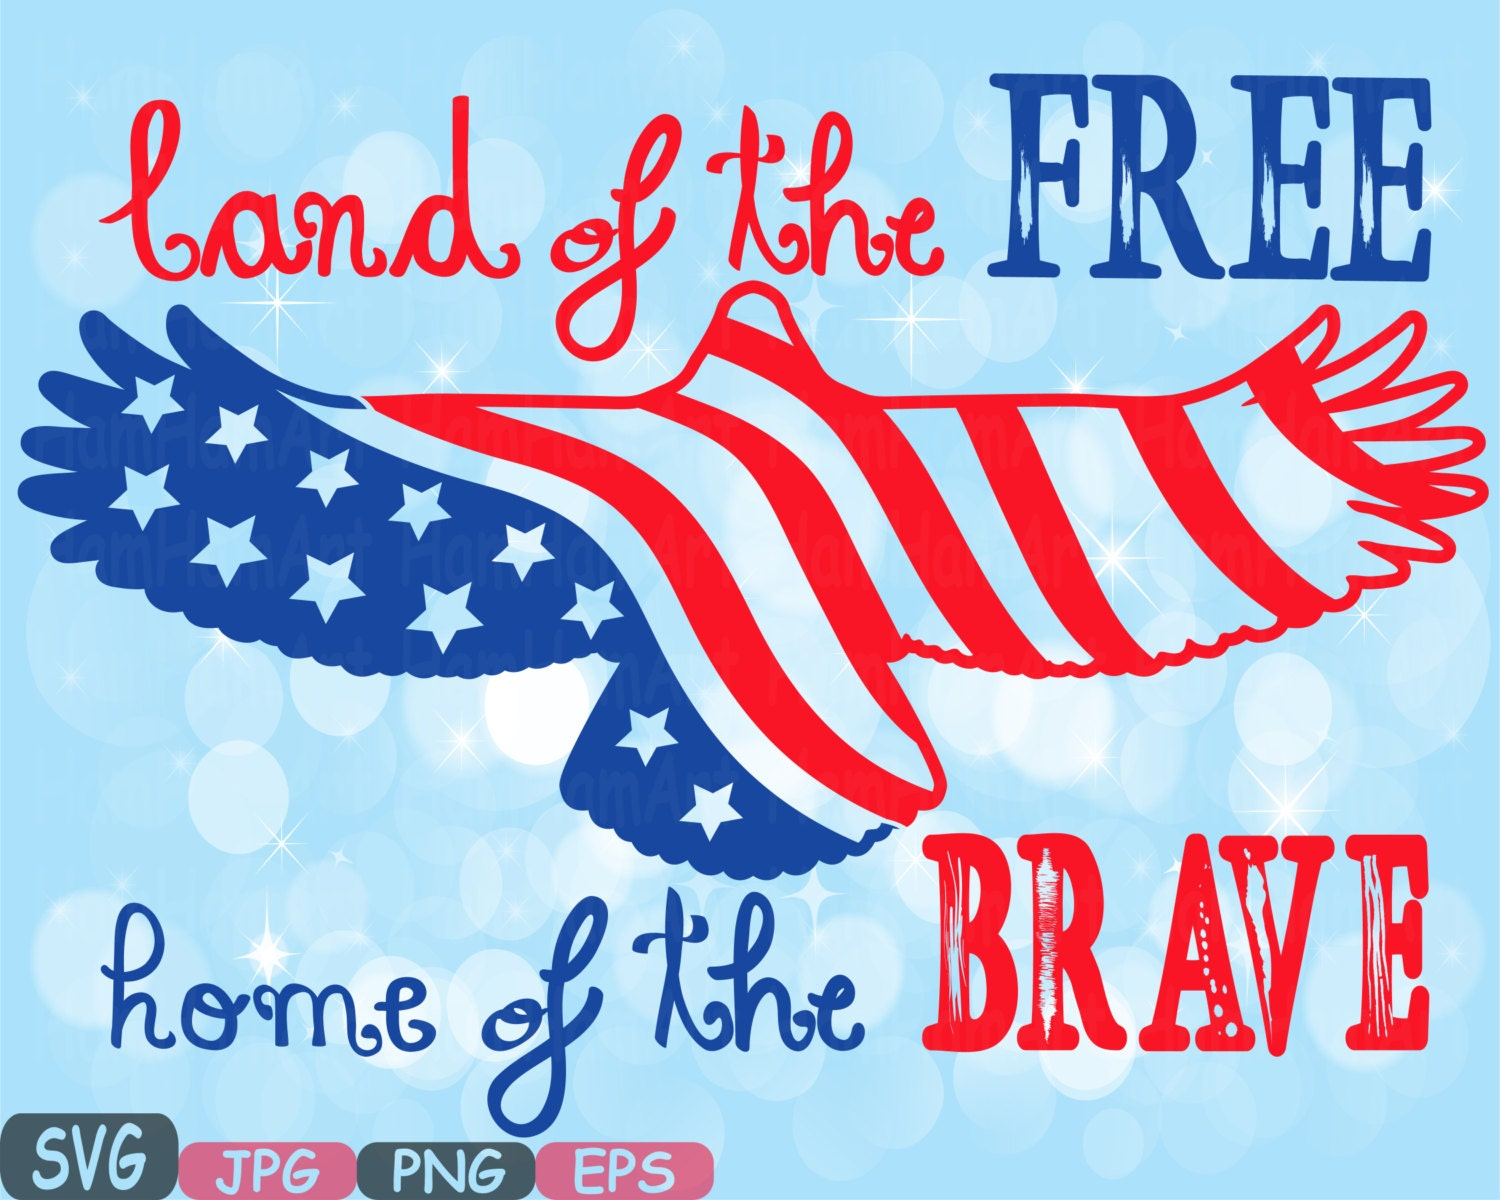 Land of the free home of the brave quote silhouette svg for How to get free land in usa